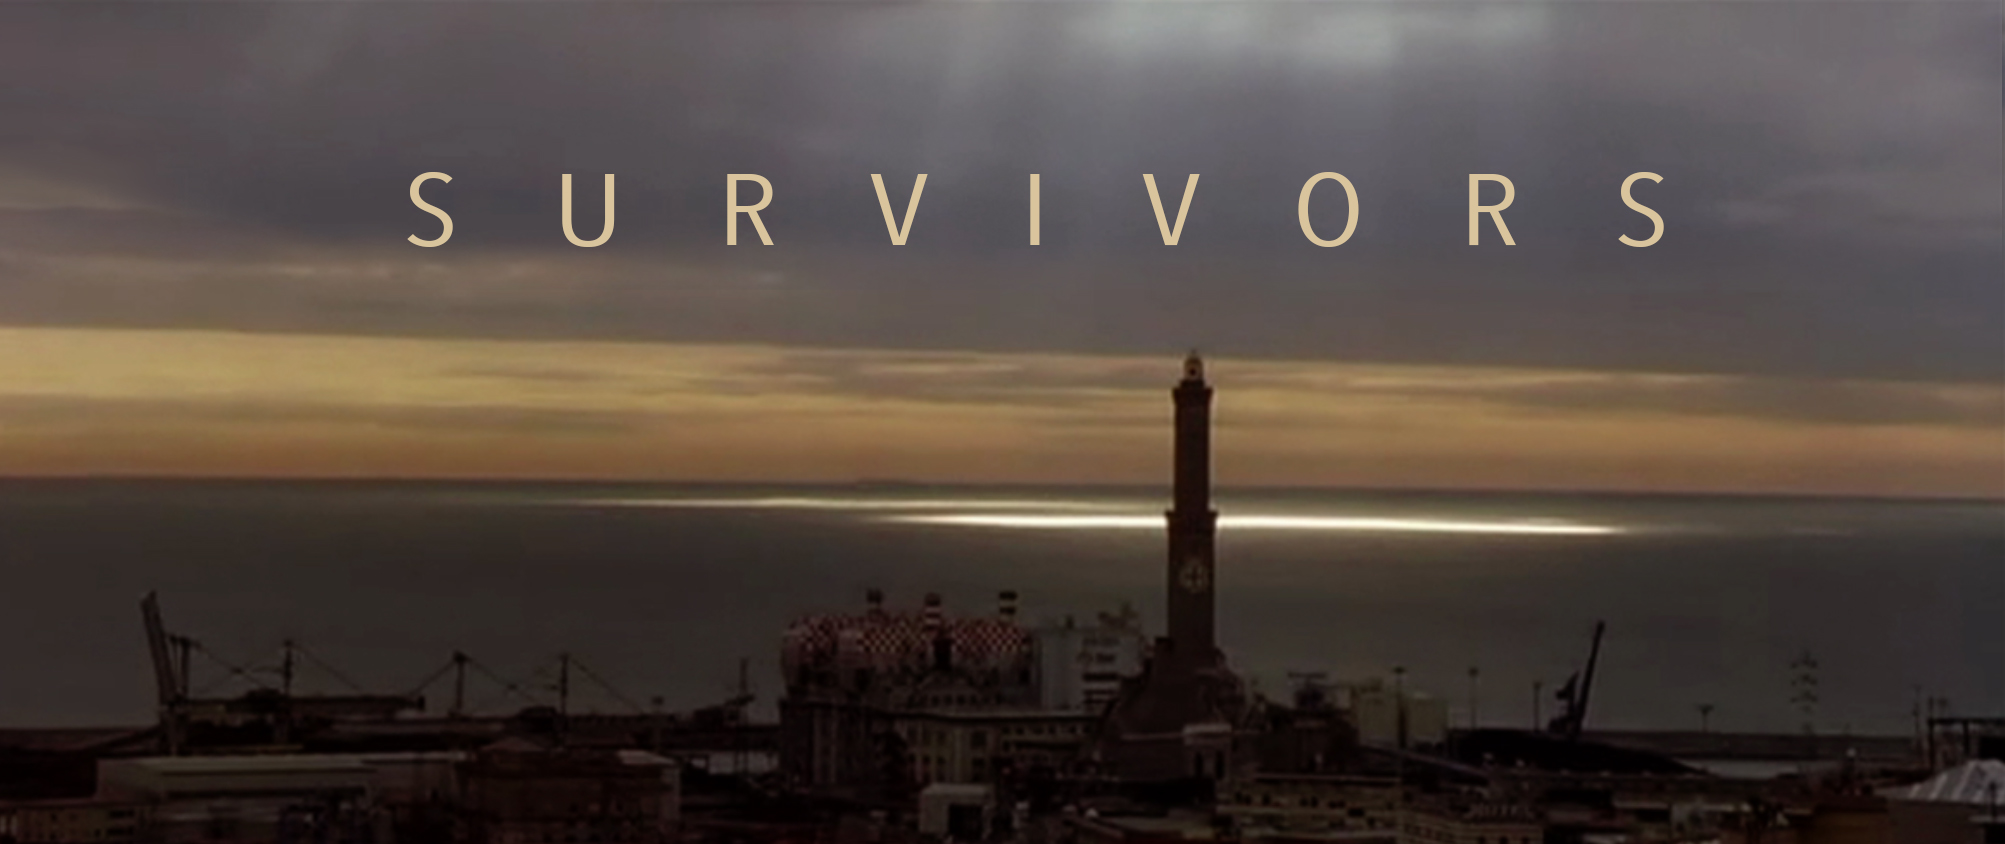 Sette naufraghi, un terribile segreto: Survivors (Rodeo Drive) al MIA|TV Drama Series Pitching Forum